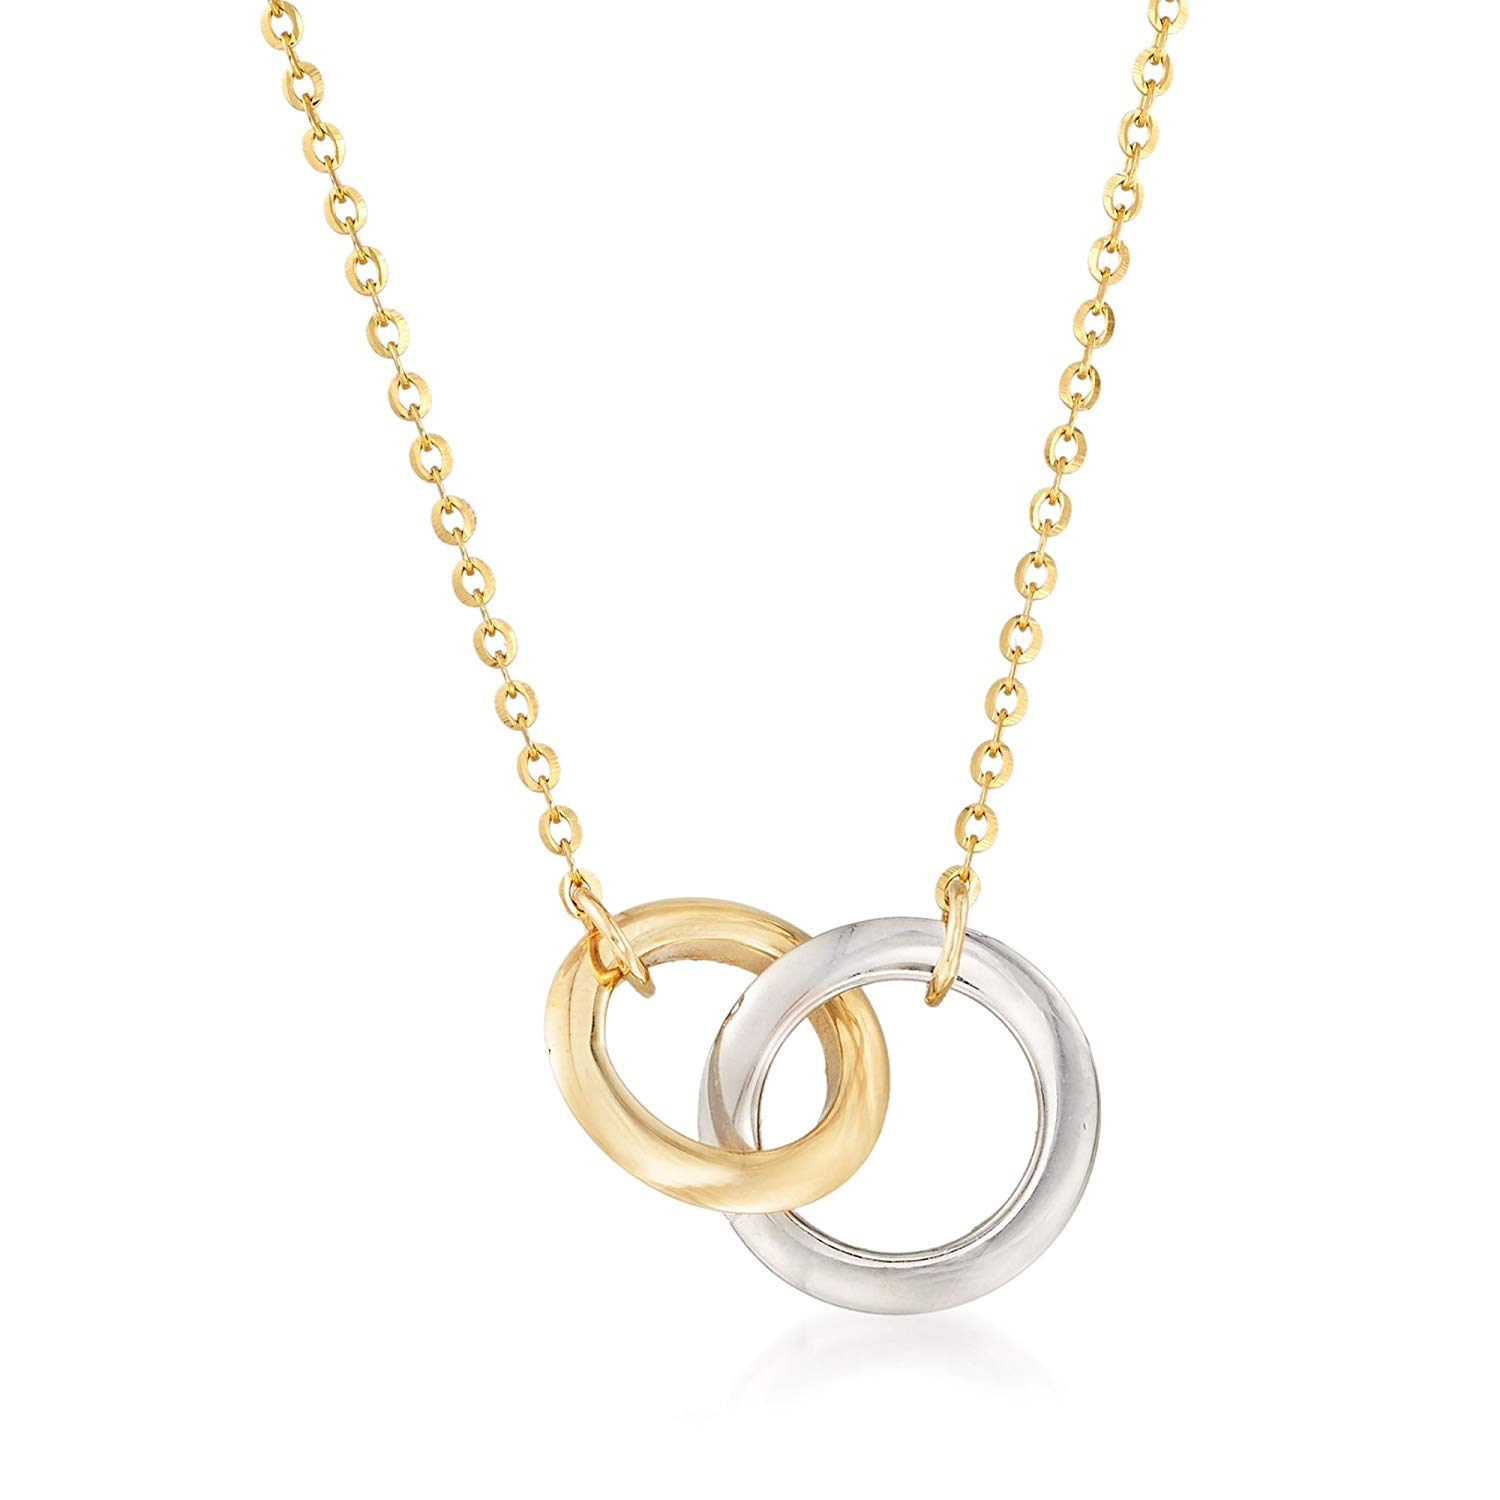 daa96549d Get Quotations · Ross-Simons 14kt Two-Tone Gold Interlocking Double Circle  Necklace